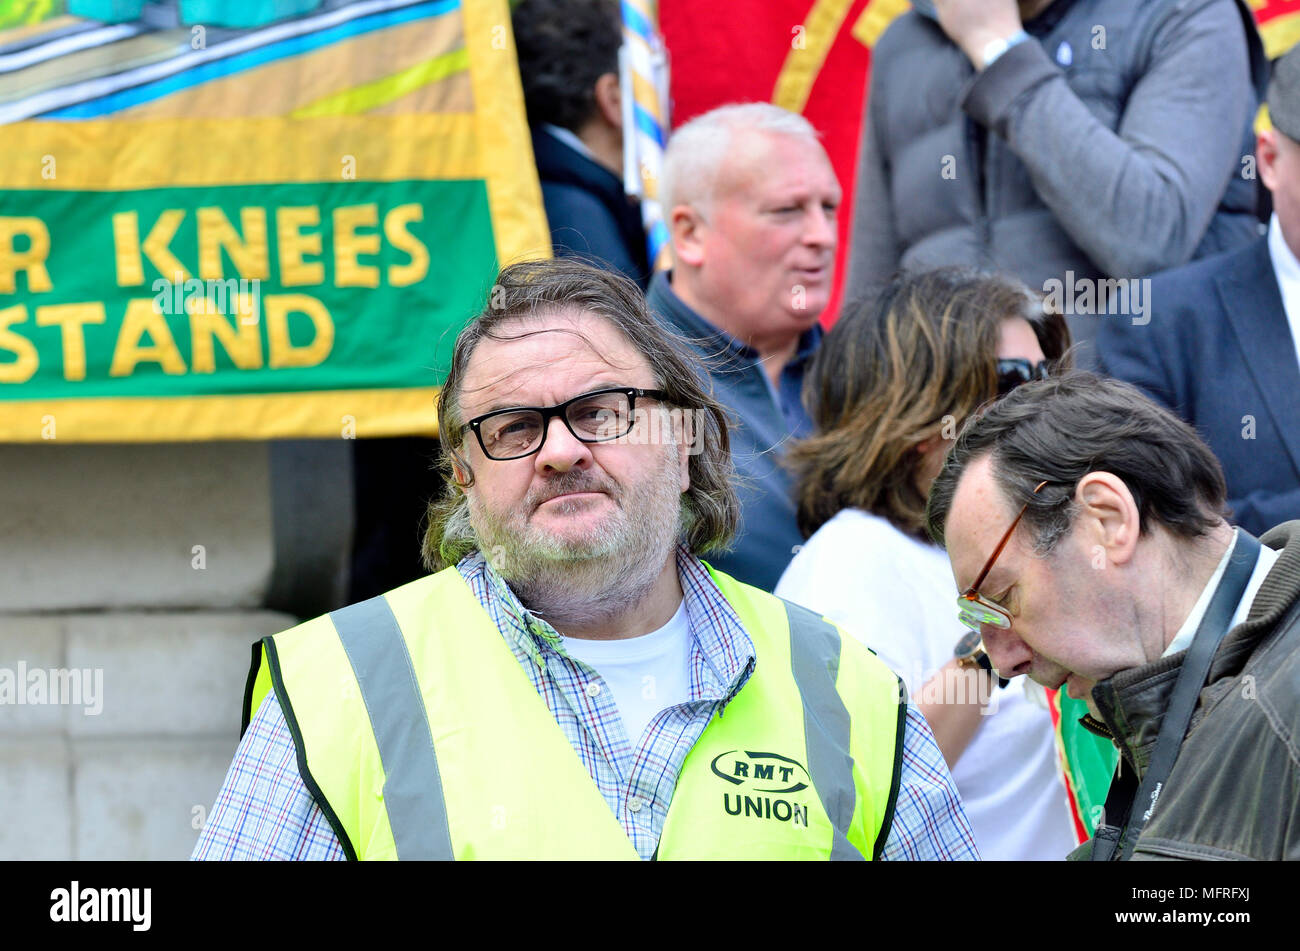 Paul Cox, RMT union South East Regional Organiser, at a protest in Westminster on the second anniversary of Britain's longest-running dispute - agains - Stock Image